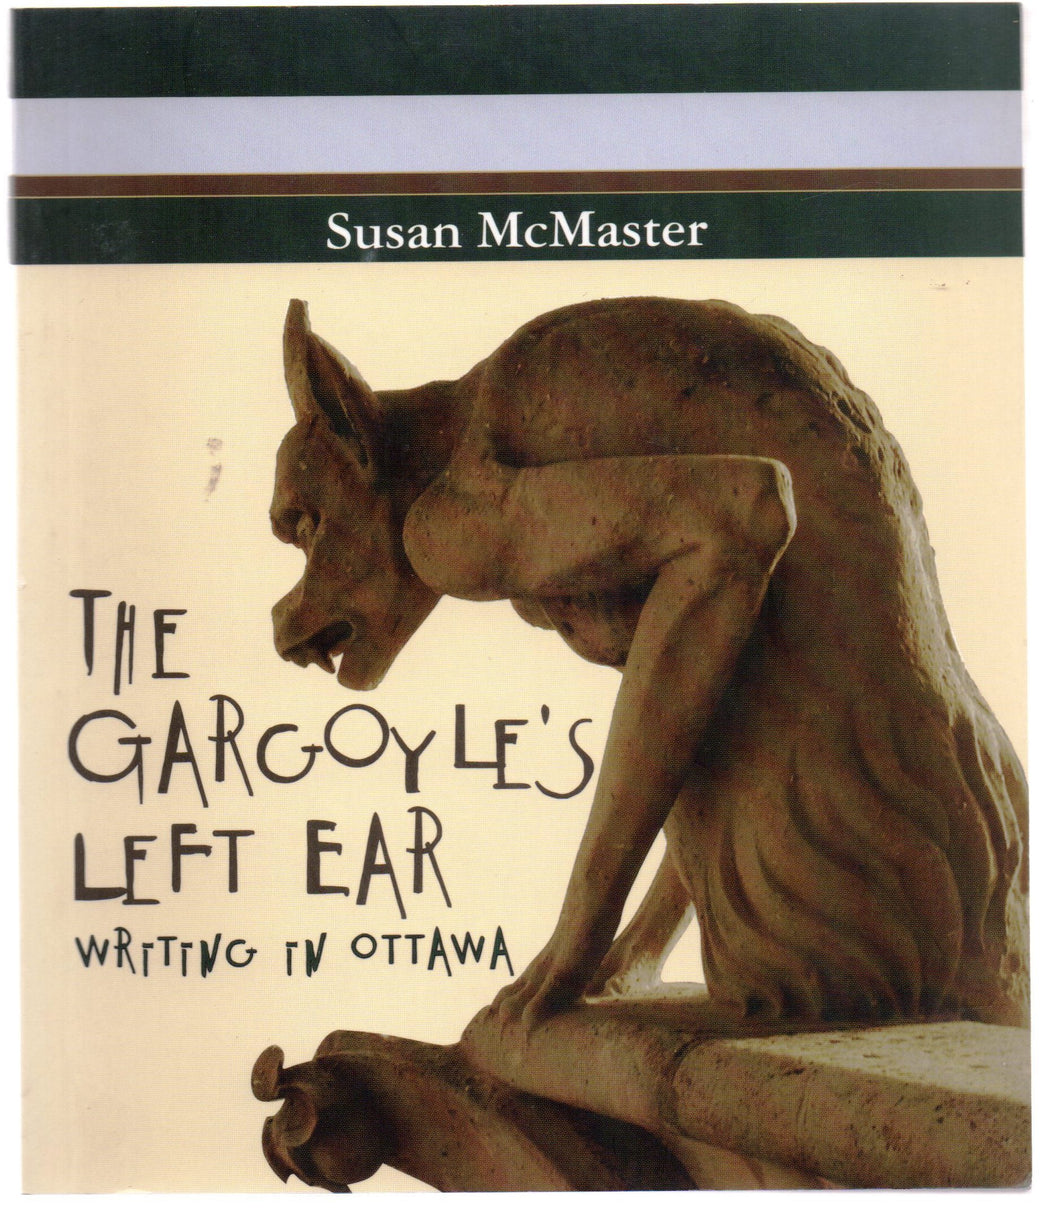 The Gargoyle's Left Ear: Writing In Ottawa